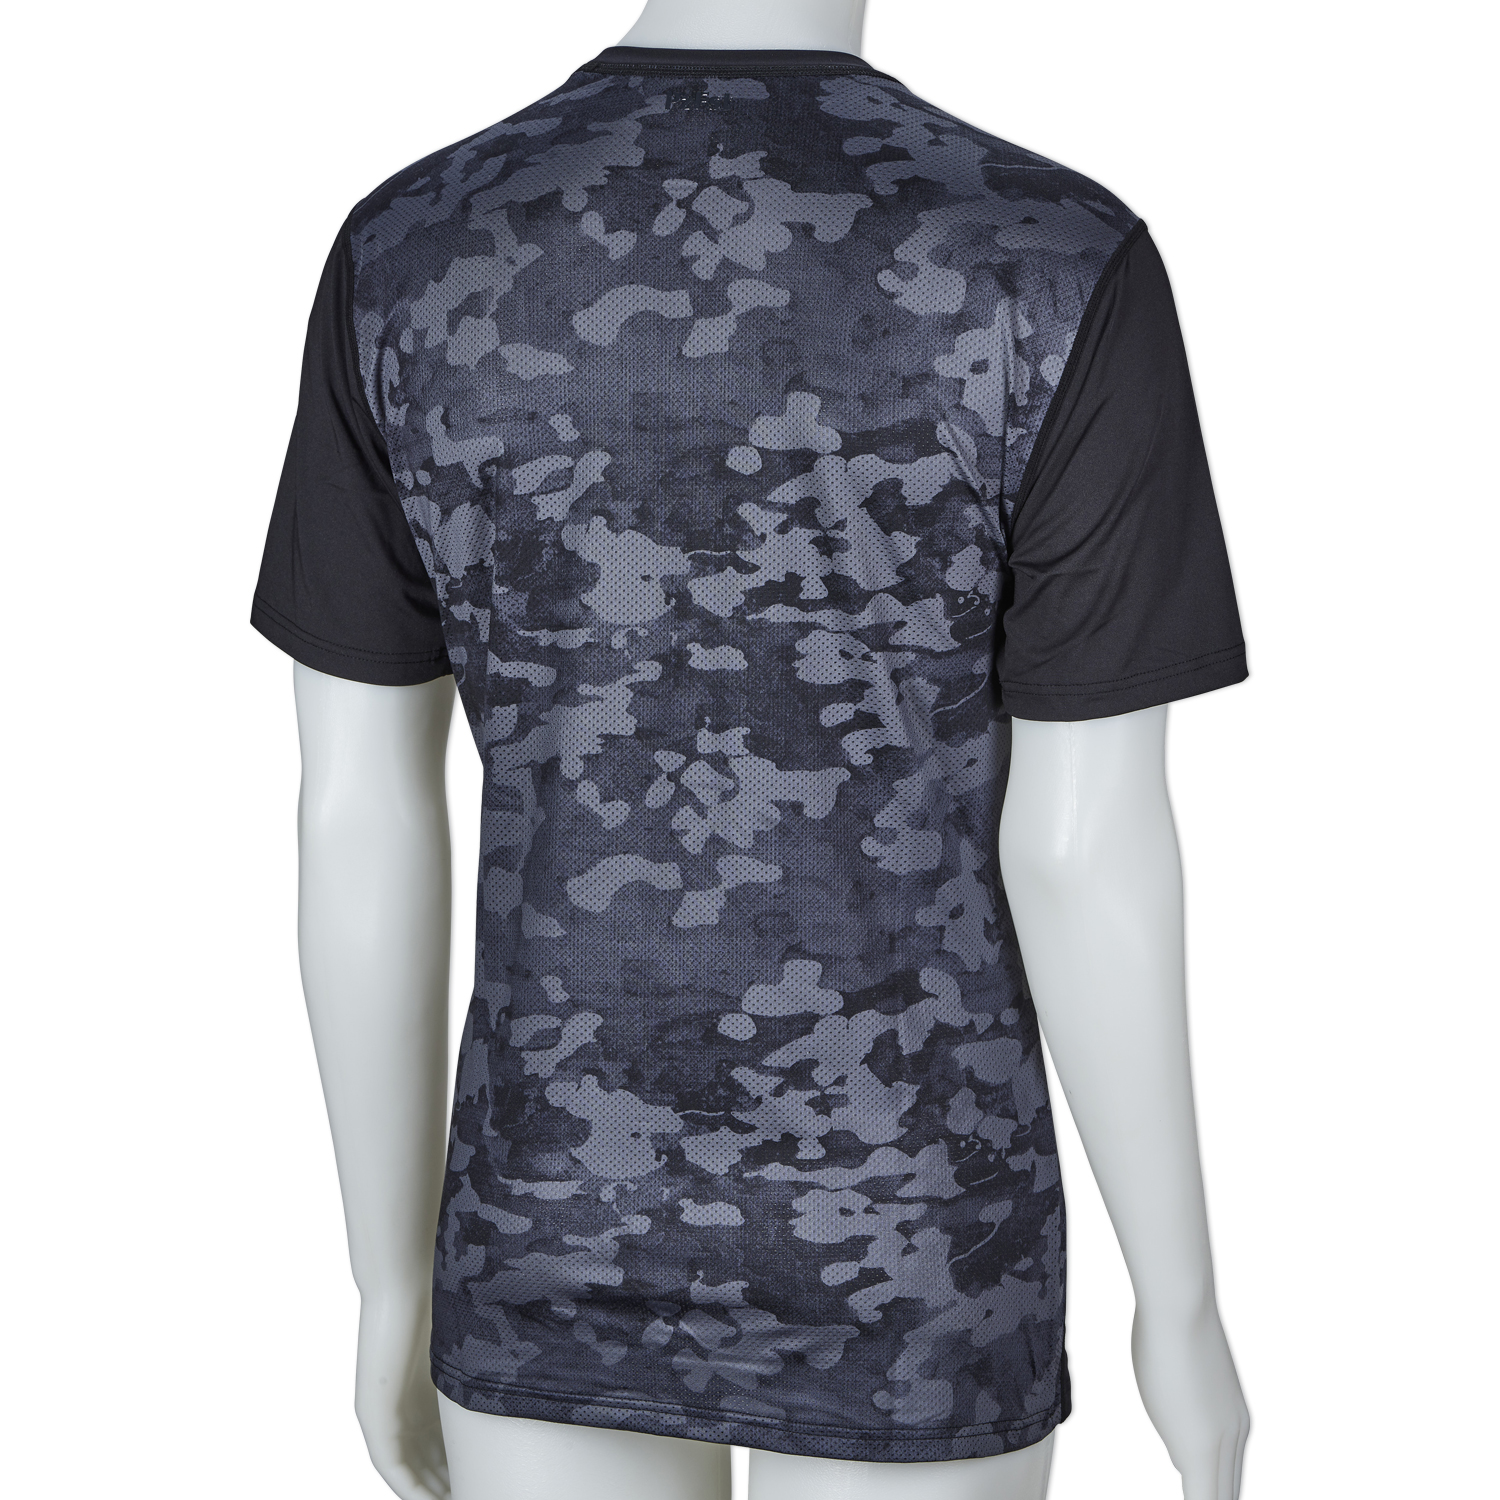 7200 Black Camo Performance Shirt